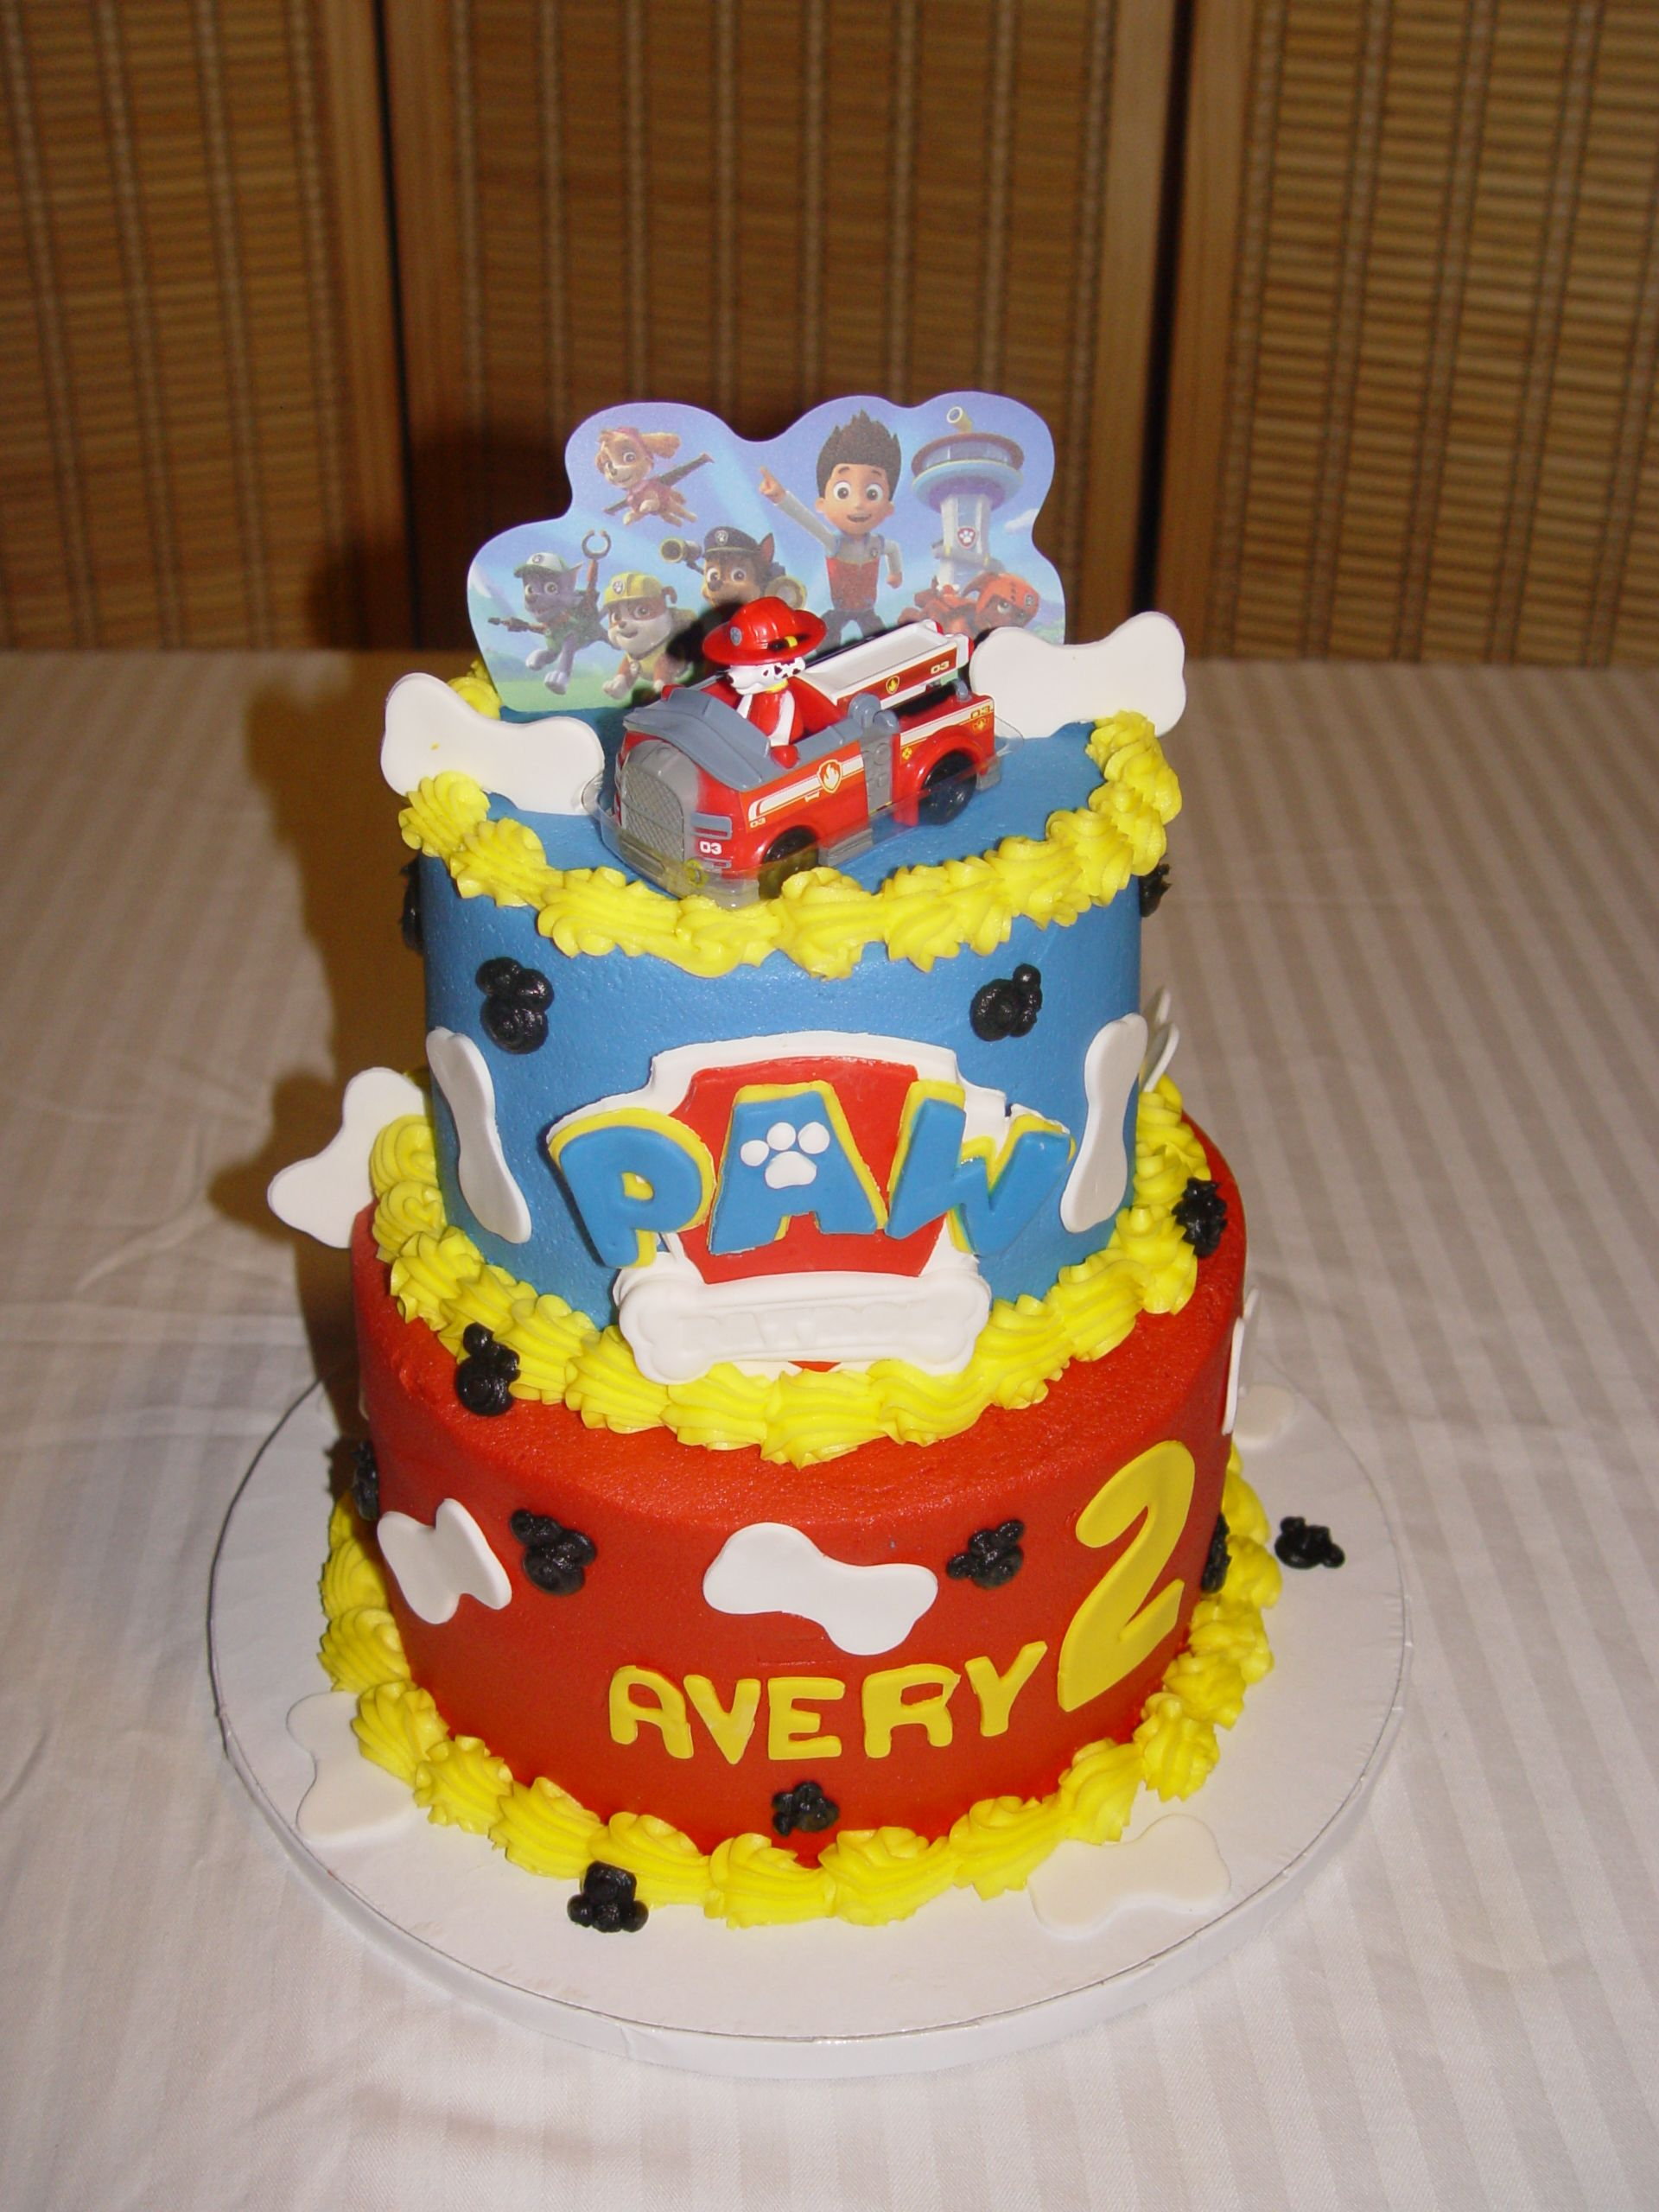 Paw Patrol Birthday Cake Toppers Buttercream Cake With Fondant Paw Patrol Logo Bones And Marshall